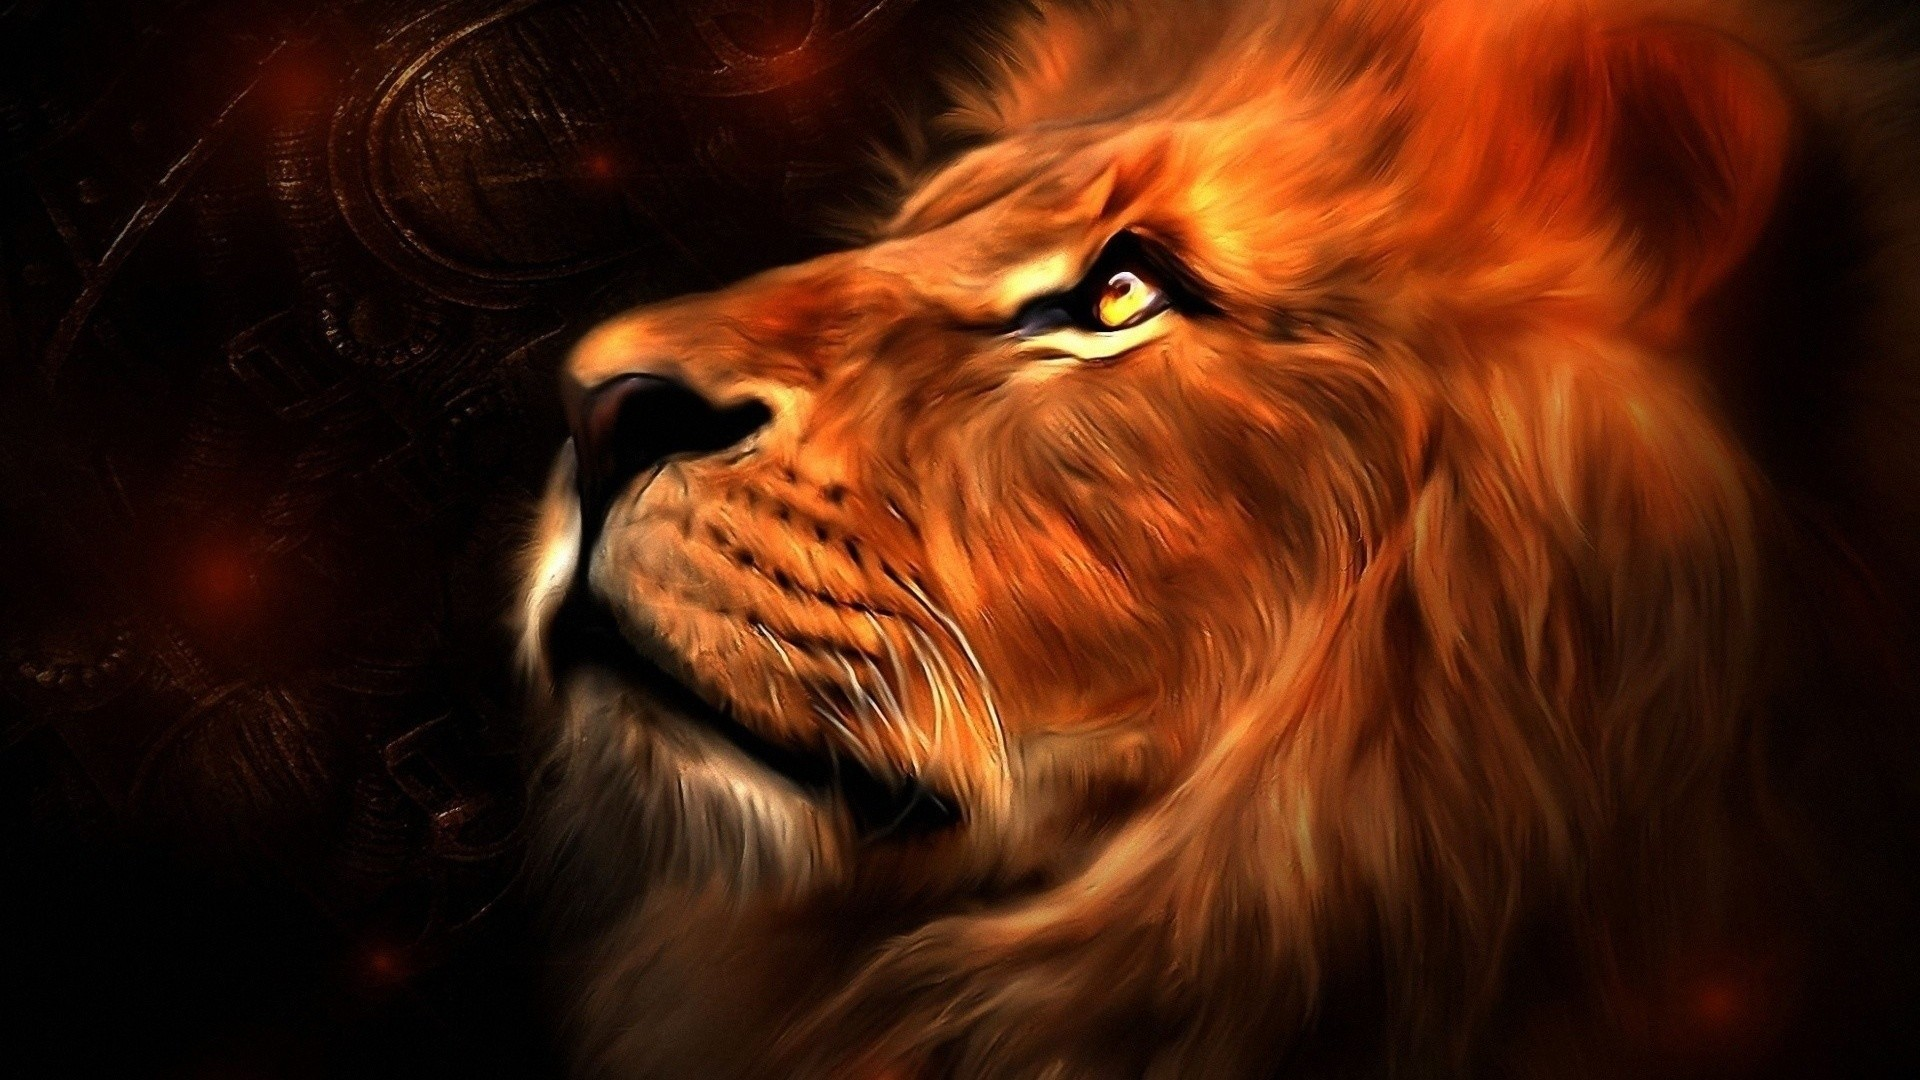 Lion Wallpapers - High Resolution Wallpapers Lion , HD Wallpaper & Backgrounds